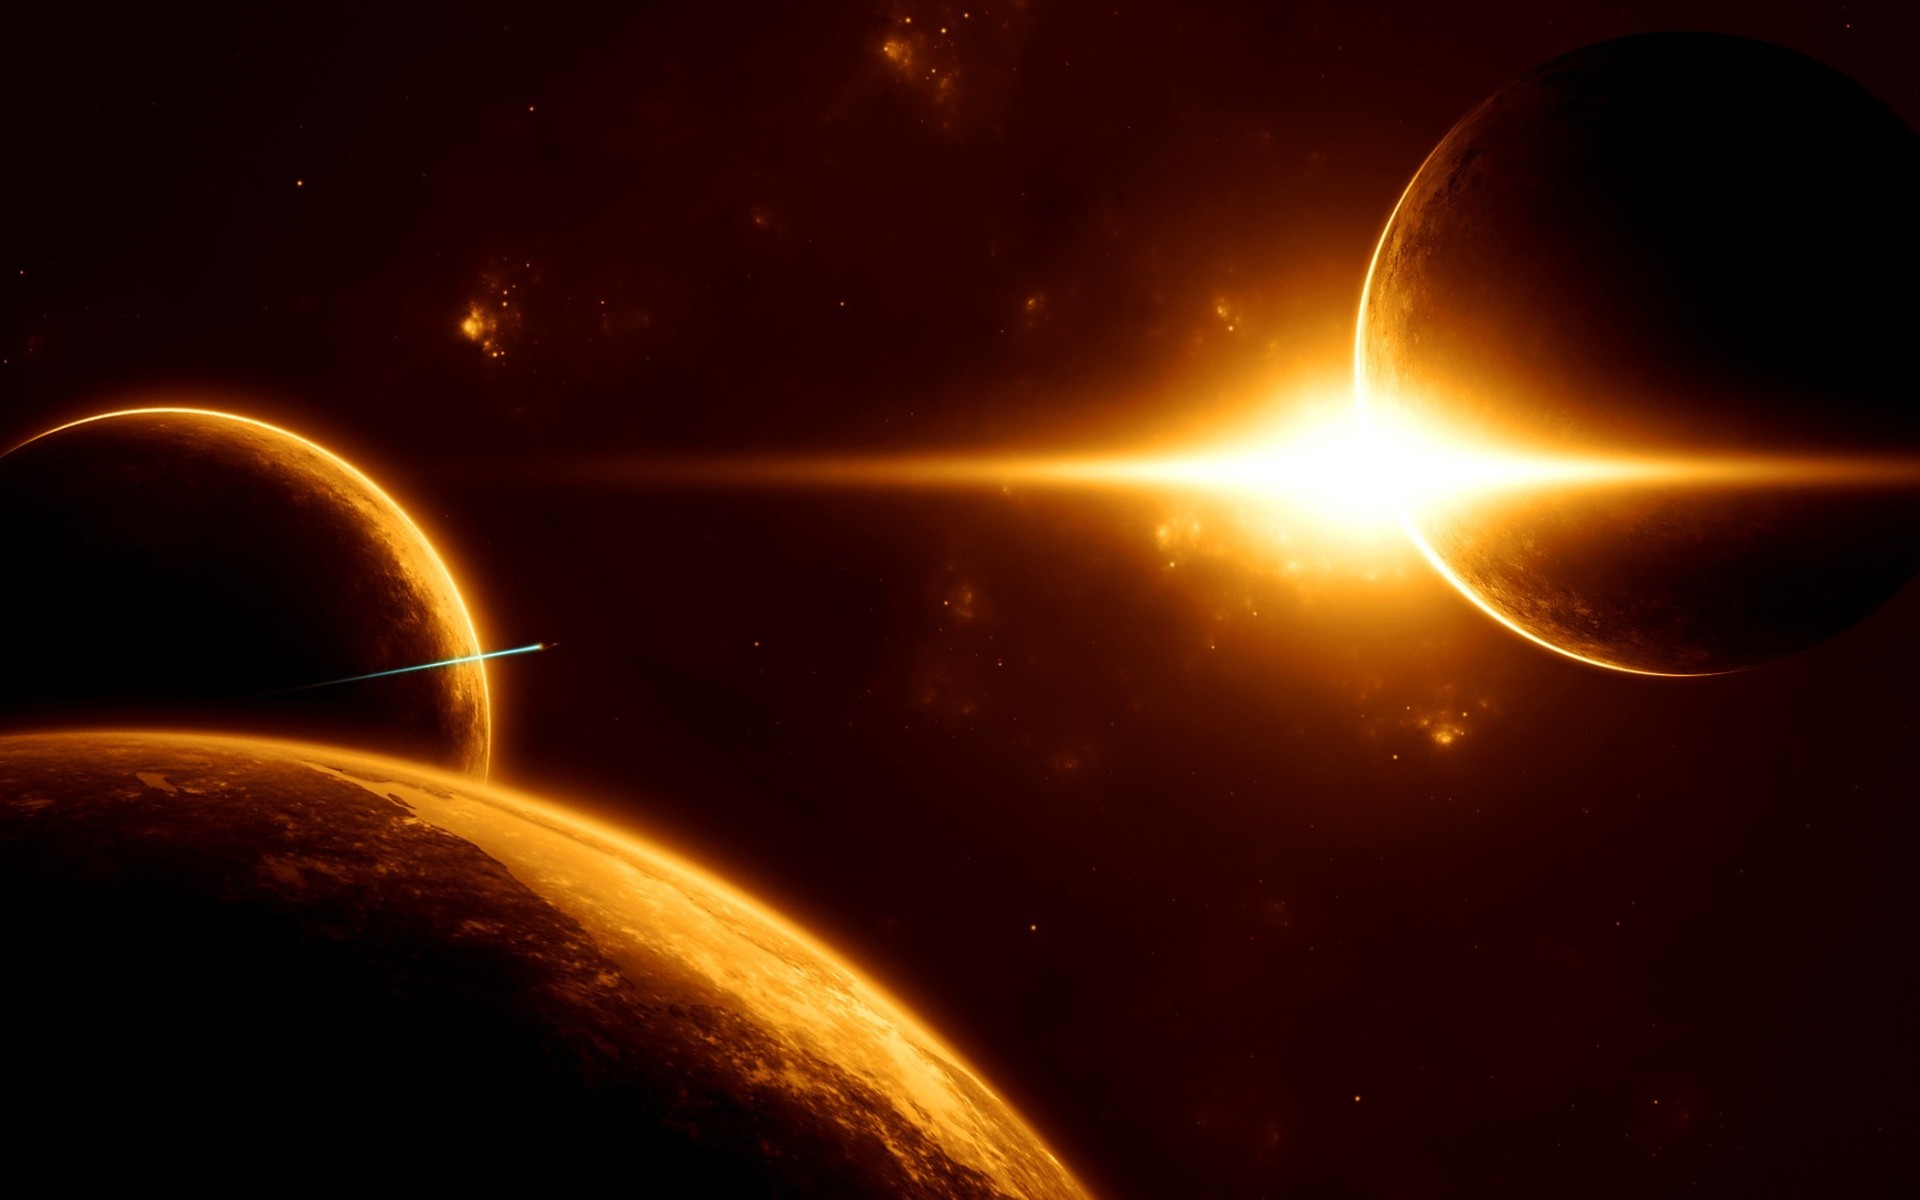 Outer space sunrise wallpapers outer space sunrise stock for Outer space 3d model